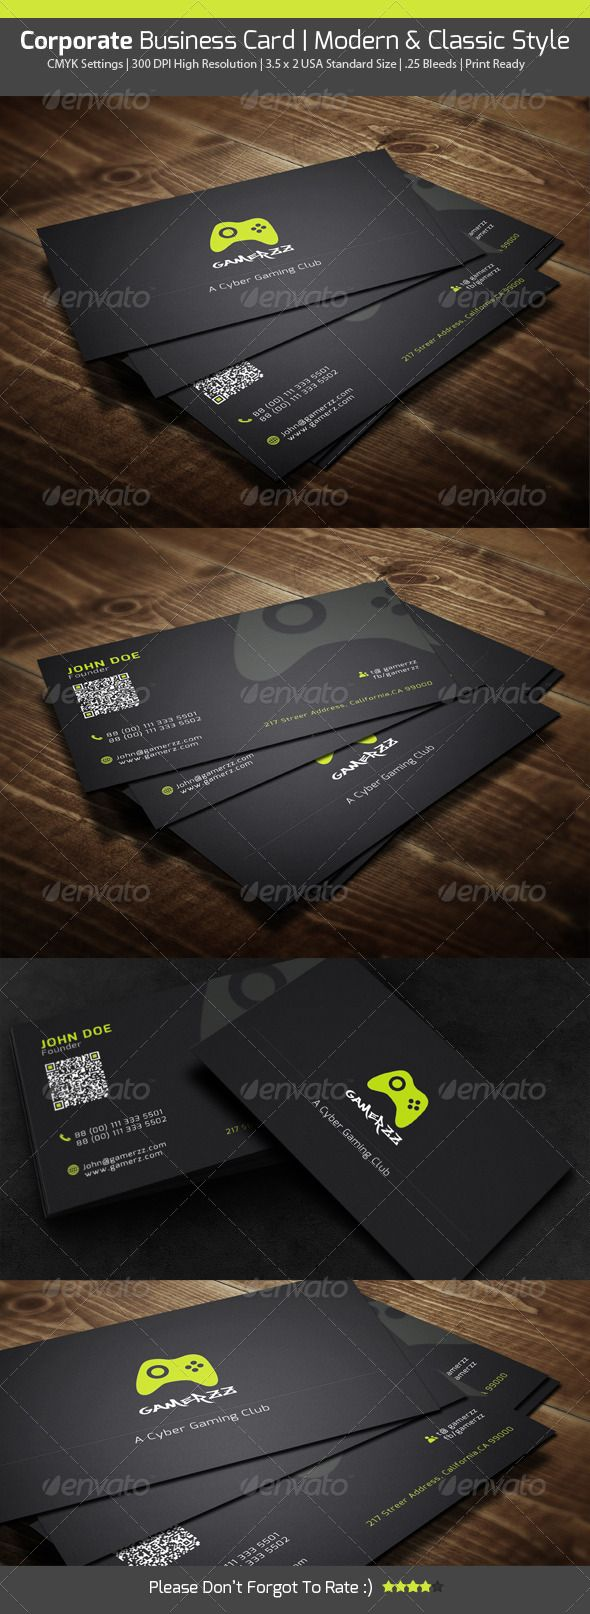 109 best print templates images on pinterest print templates buy gamers business card by abdullahnoman on graphicriver its a gorgeous design what i think so its a unique concept ba reheart Image collections